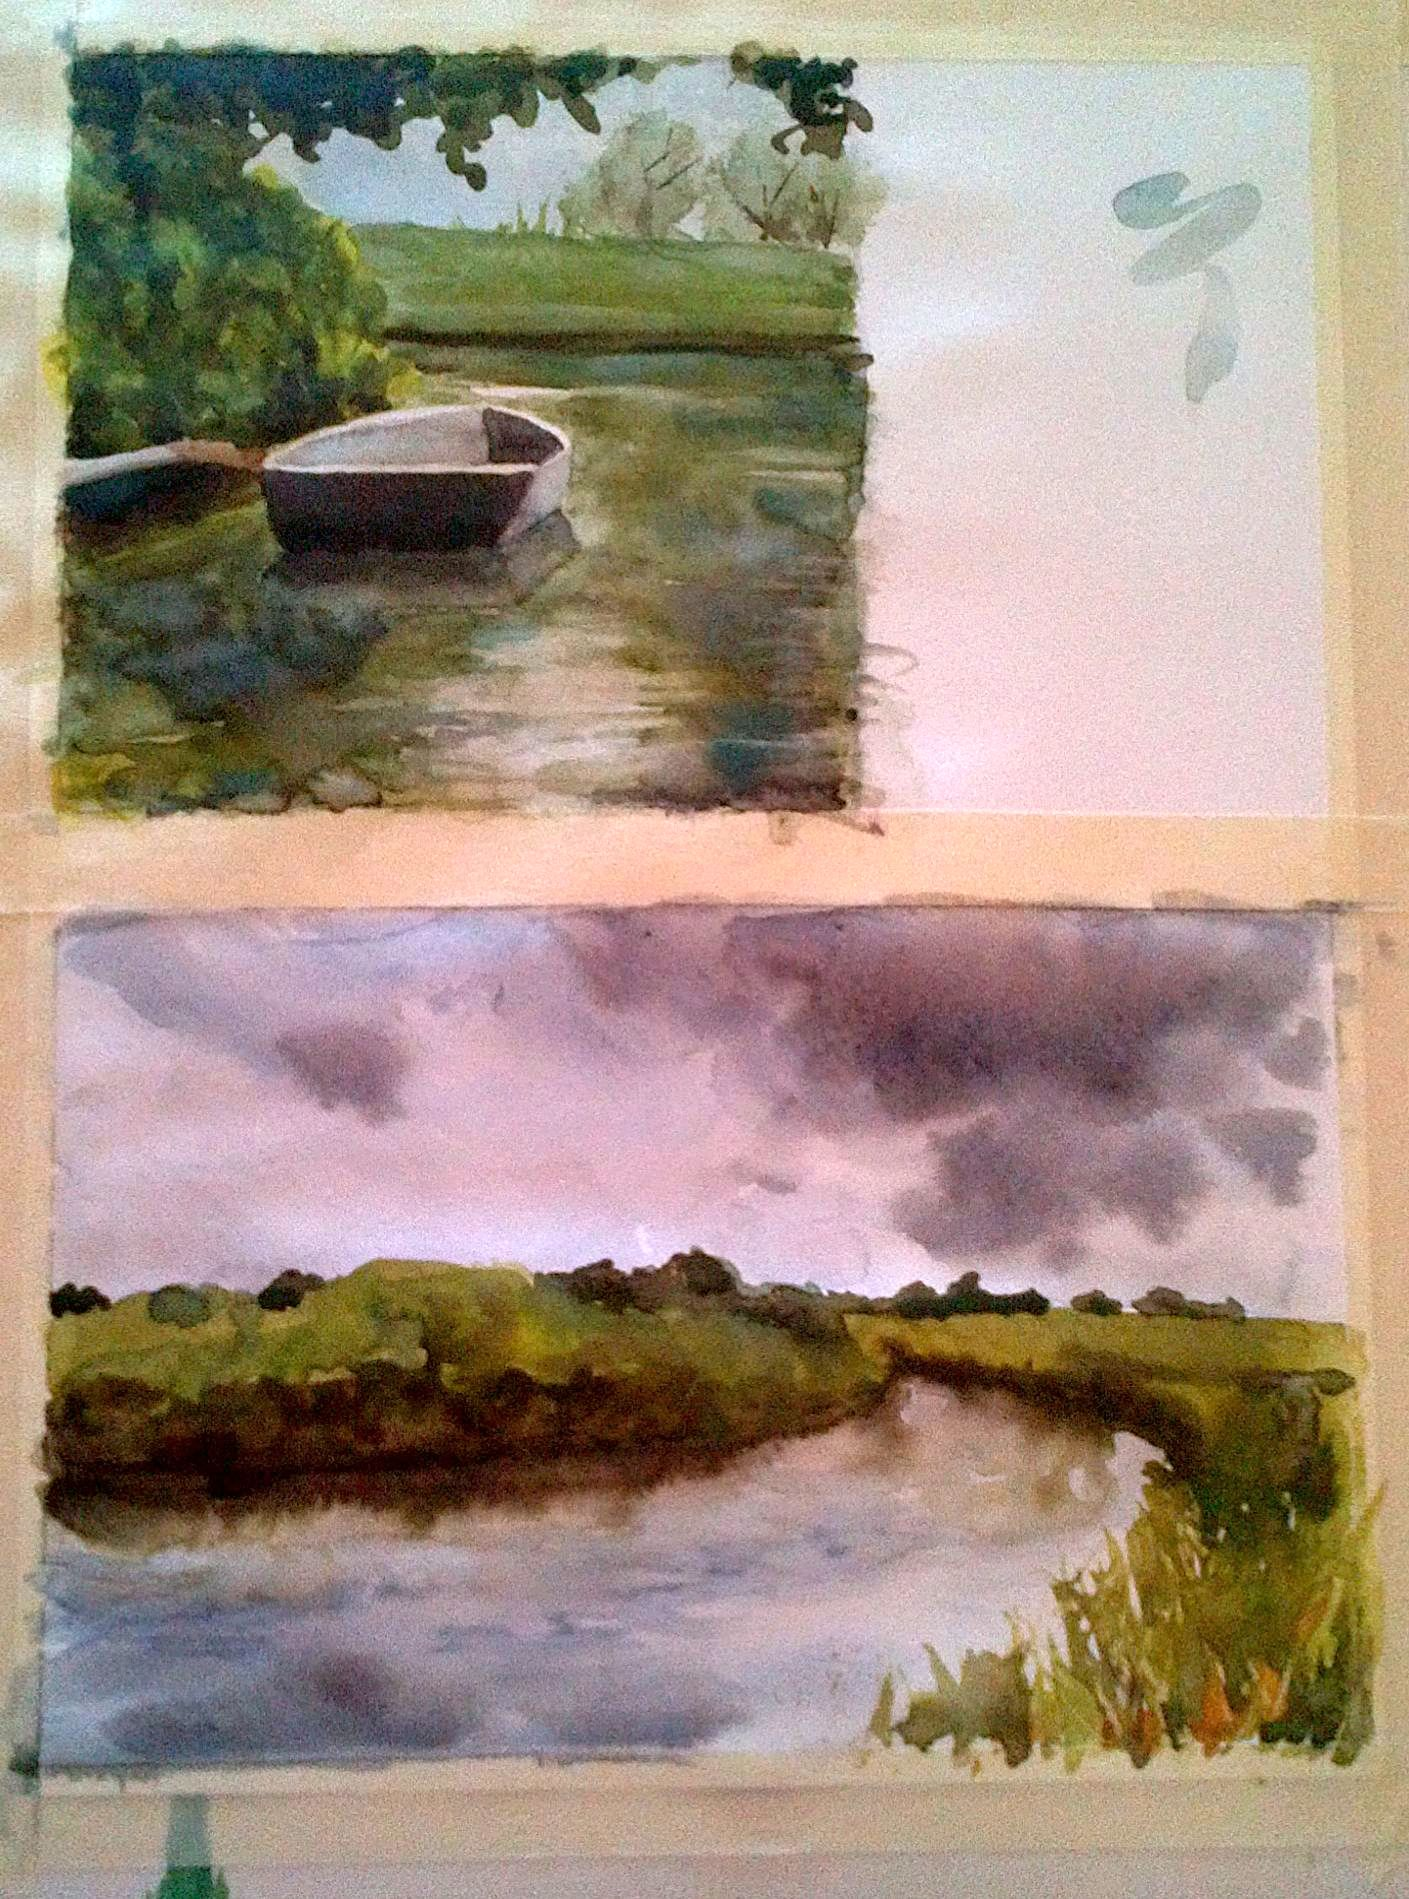 Zweite und dritte Studie/ Second and third mini study in watercolours